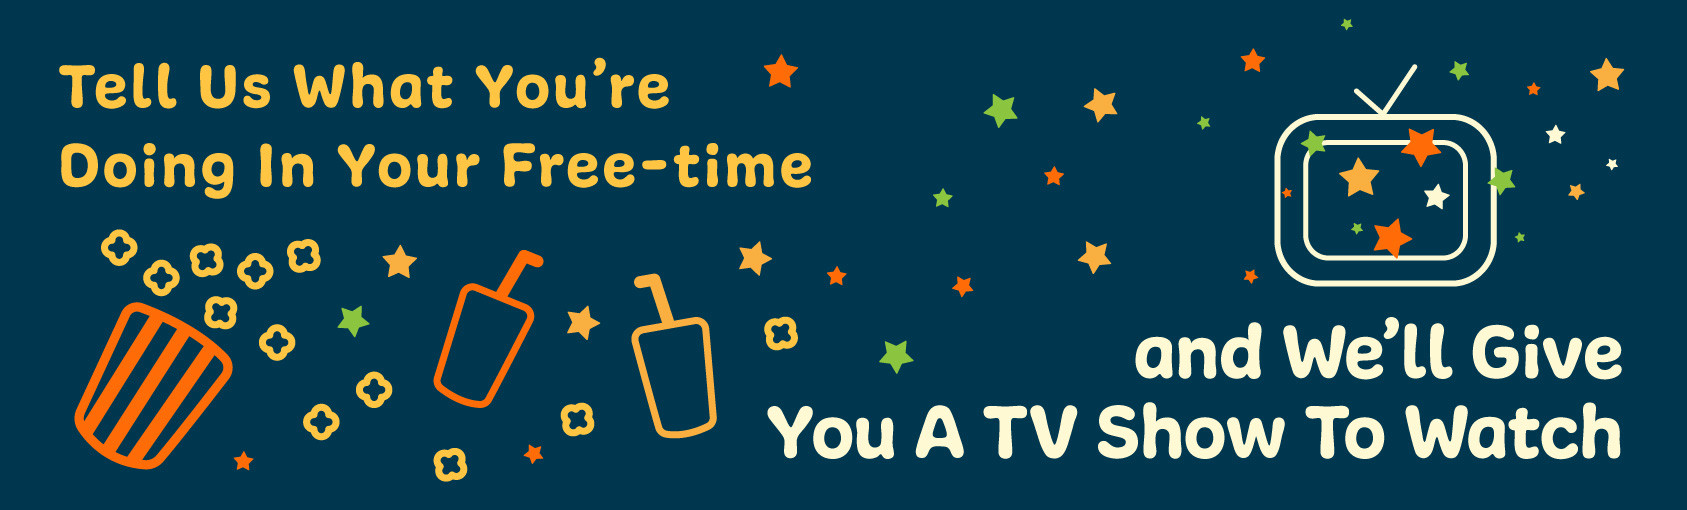 Quiz: Tell Us What You're Doing With Your Free-time and We'll Give You A Show to Watch banner